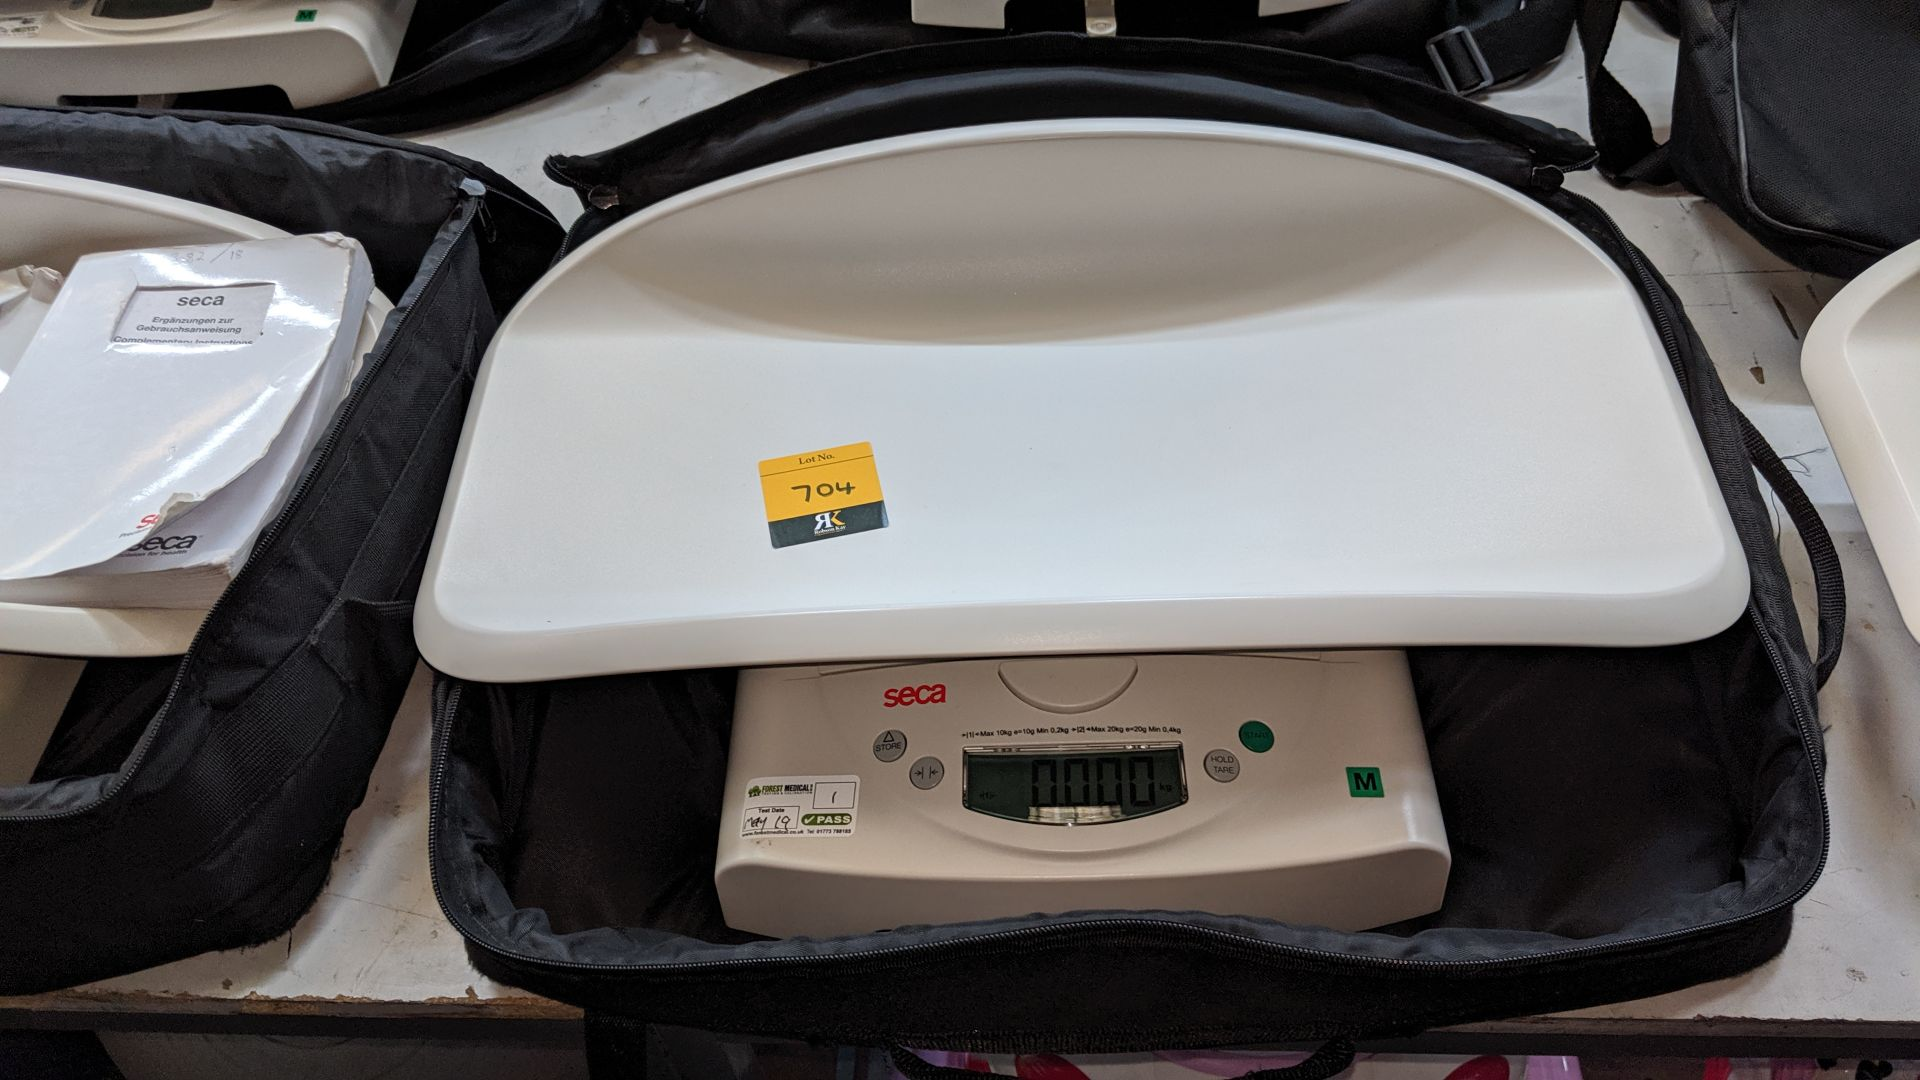 Lot 704 - Seca model 384 baby scales max. capacity 20kg. This is one of a large number of lots used/owned by